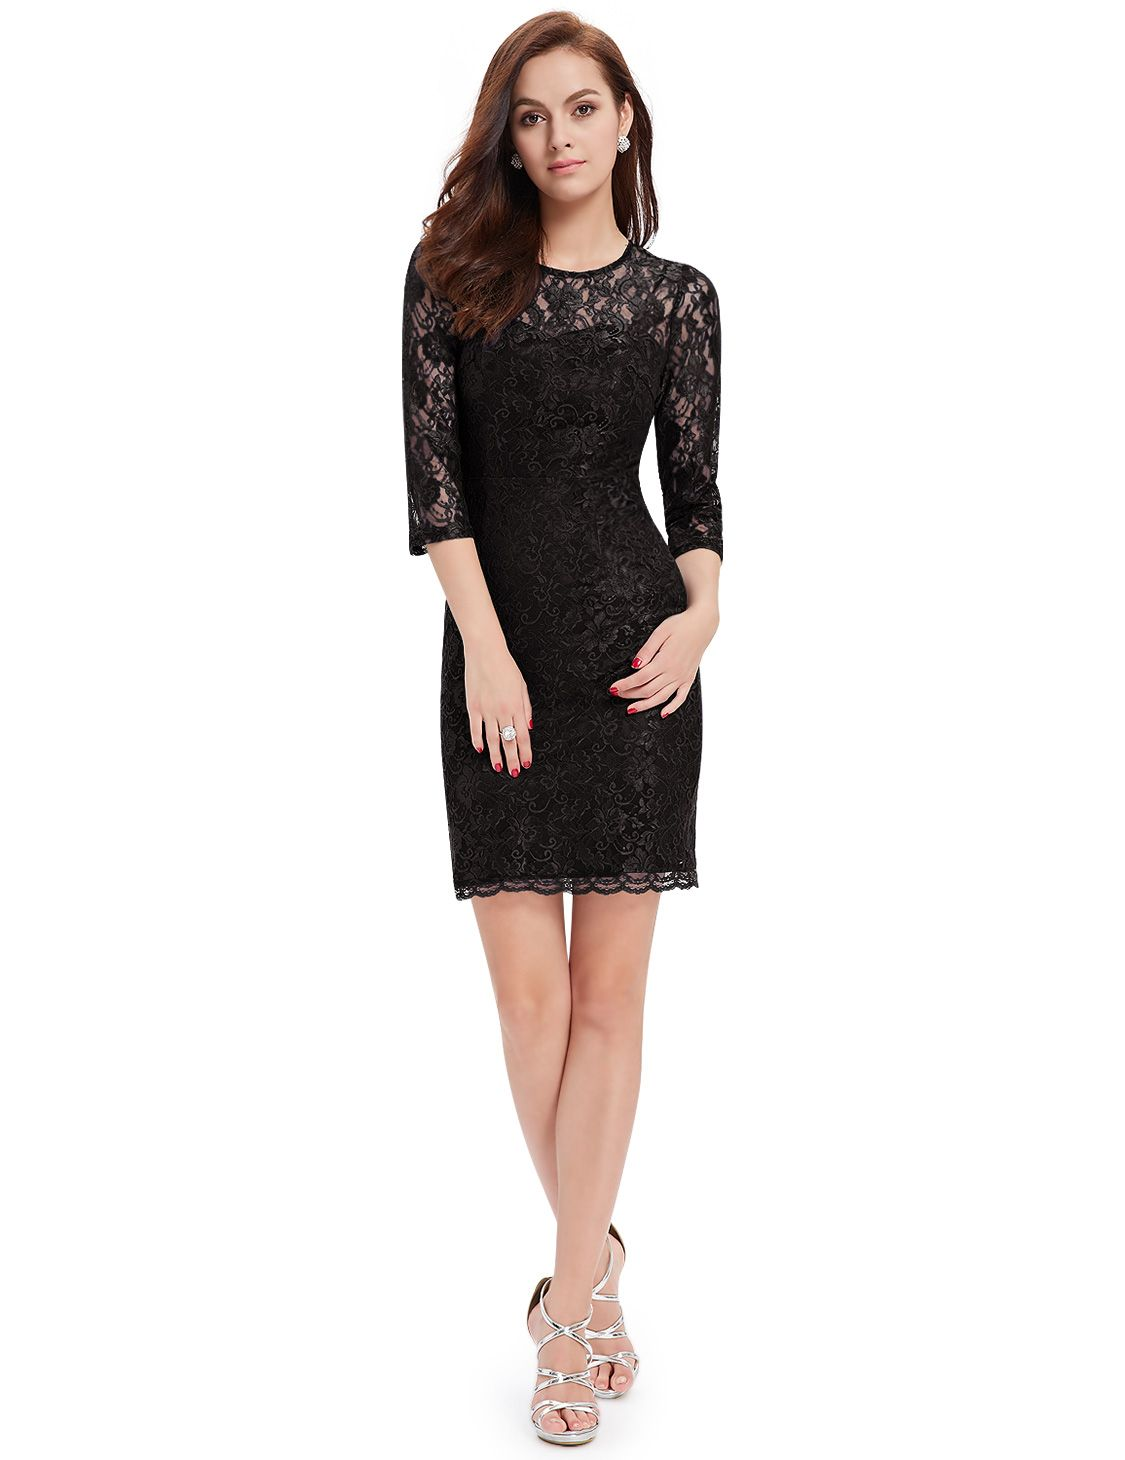 3b22c3d9ca3 High Trending Cocktail   Party Dresses at 30% OFF - Mark   Roberts ...